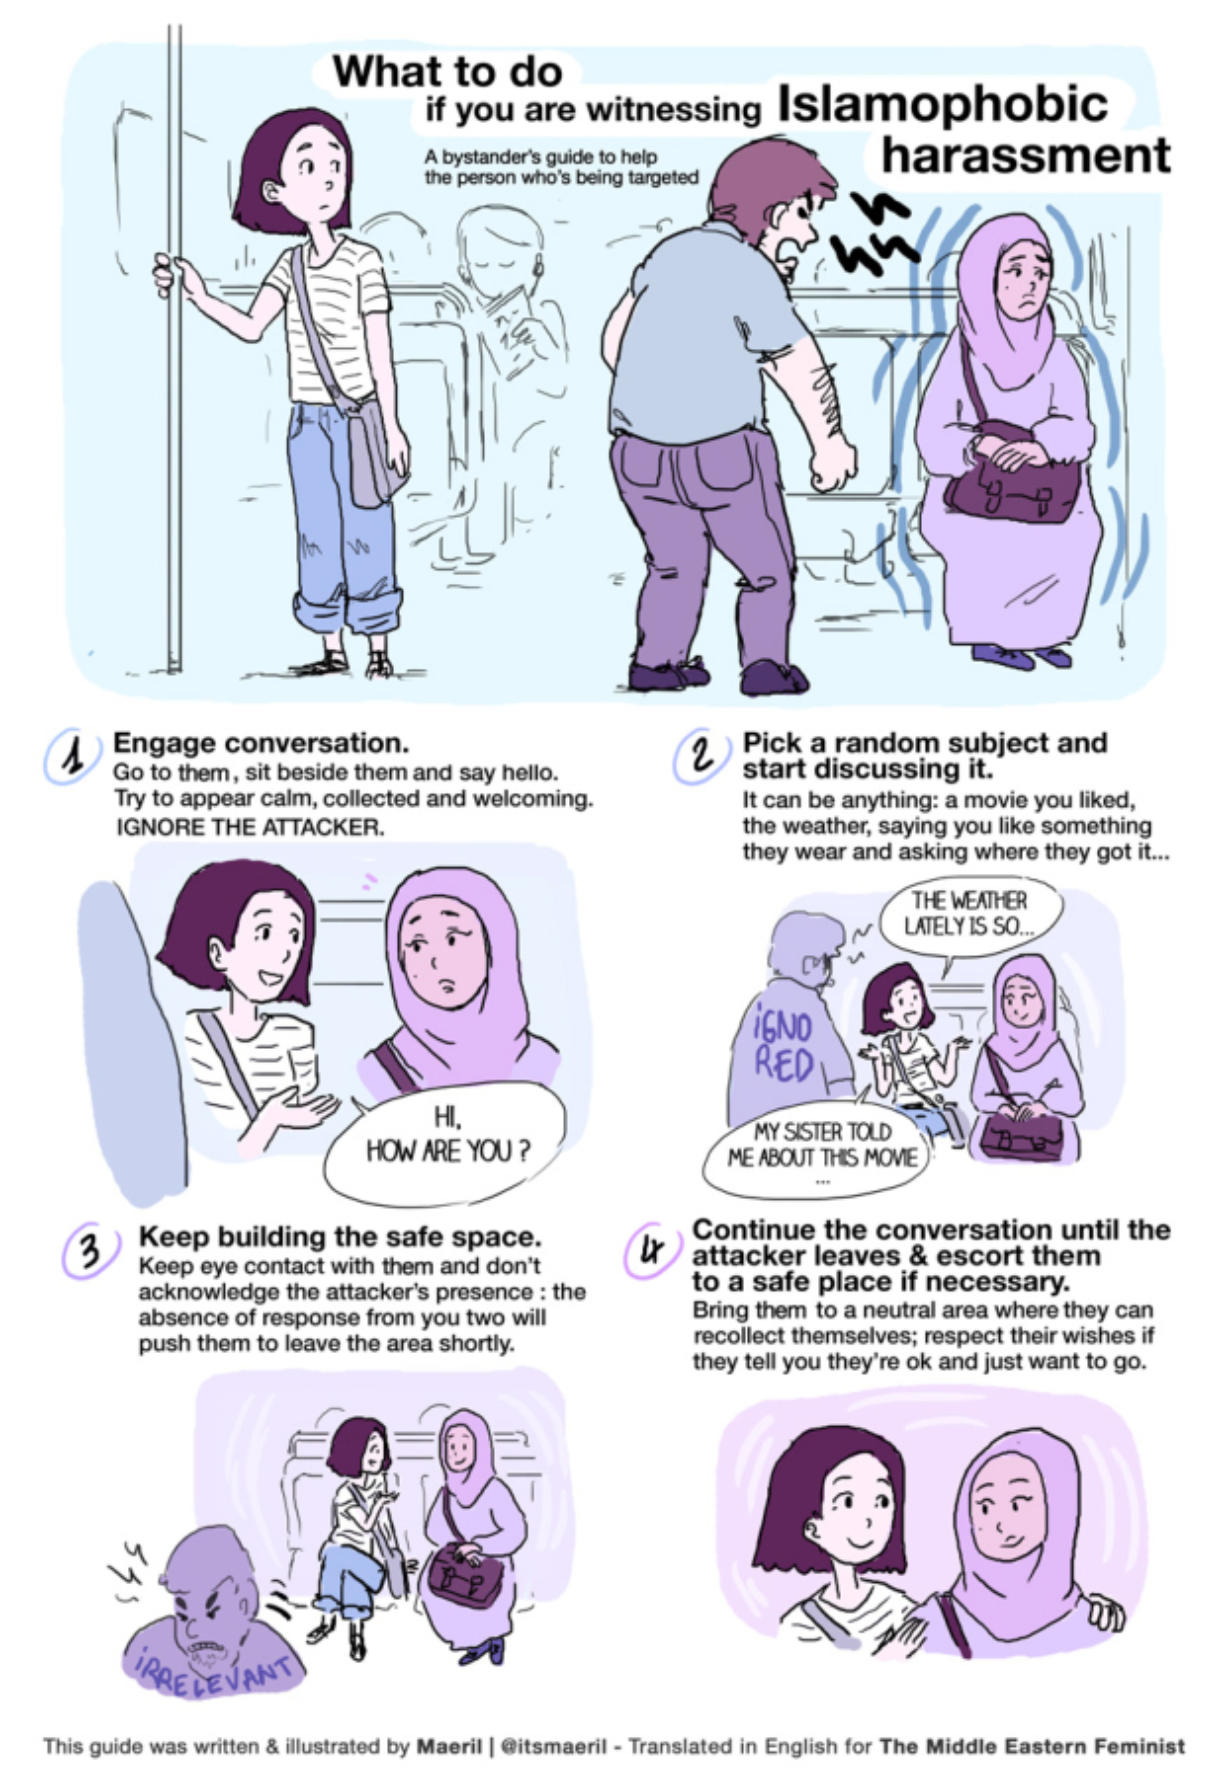 This simple guide to boxing out harassment, by the French artist and blogger Maeril, has been widely shared on social media in the last few months.